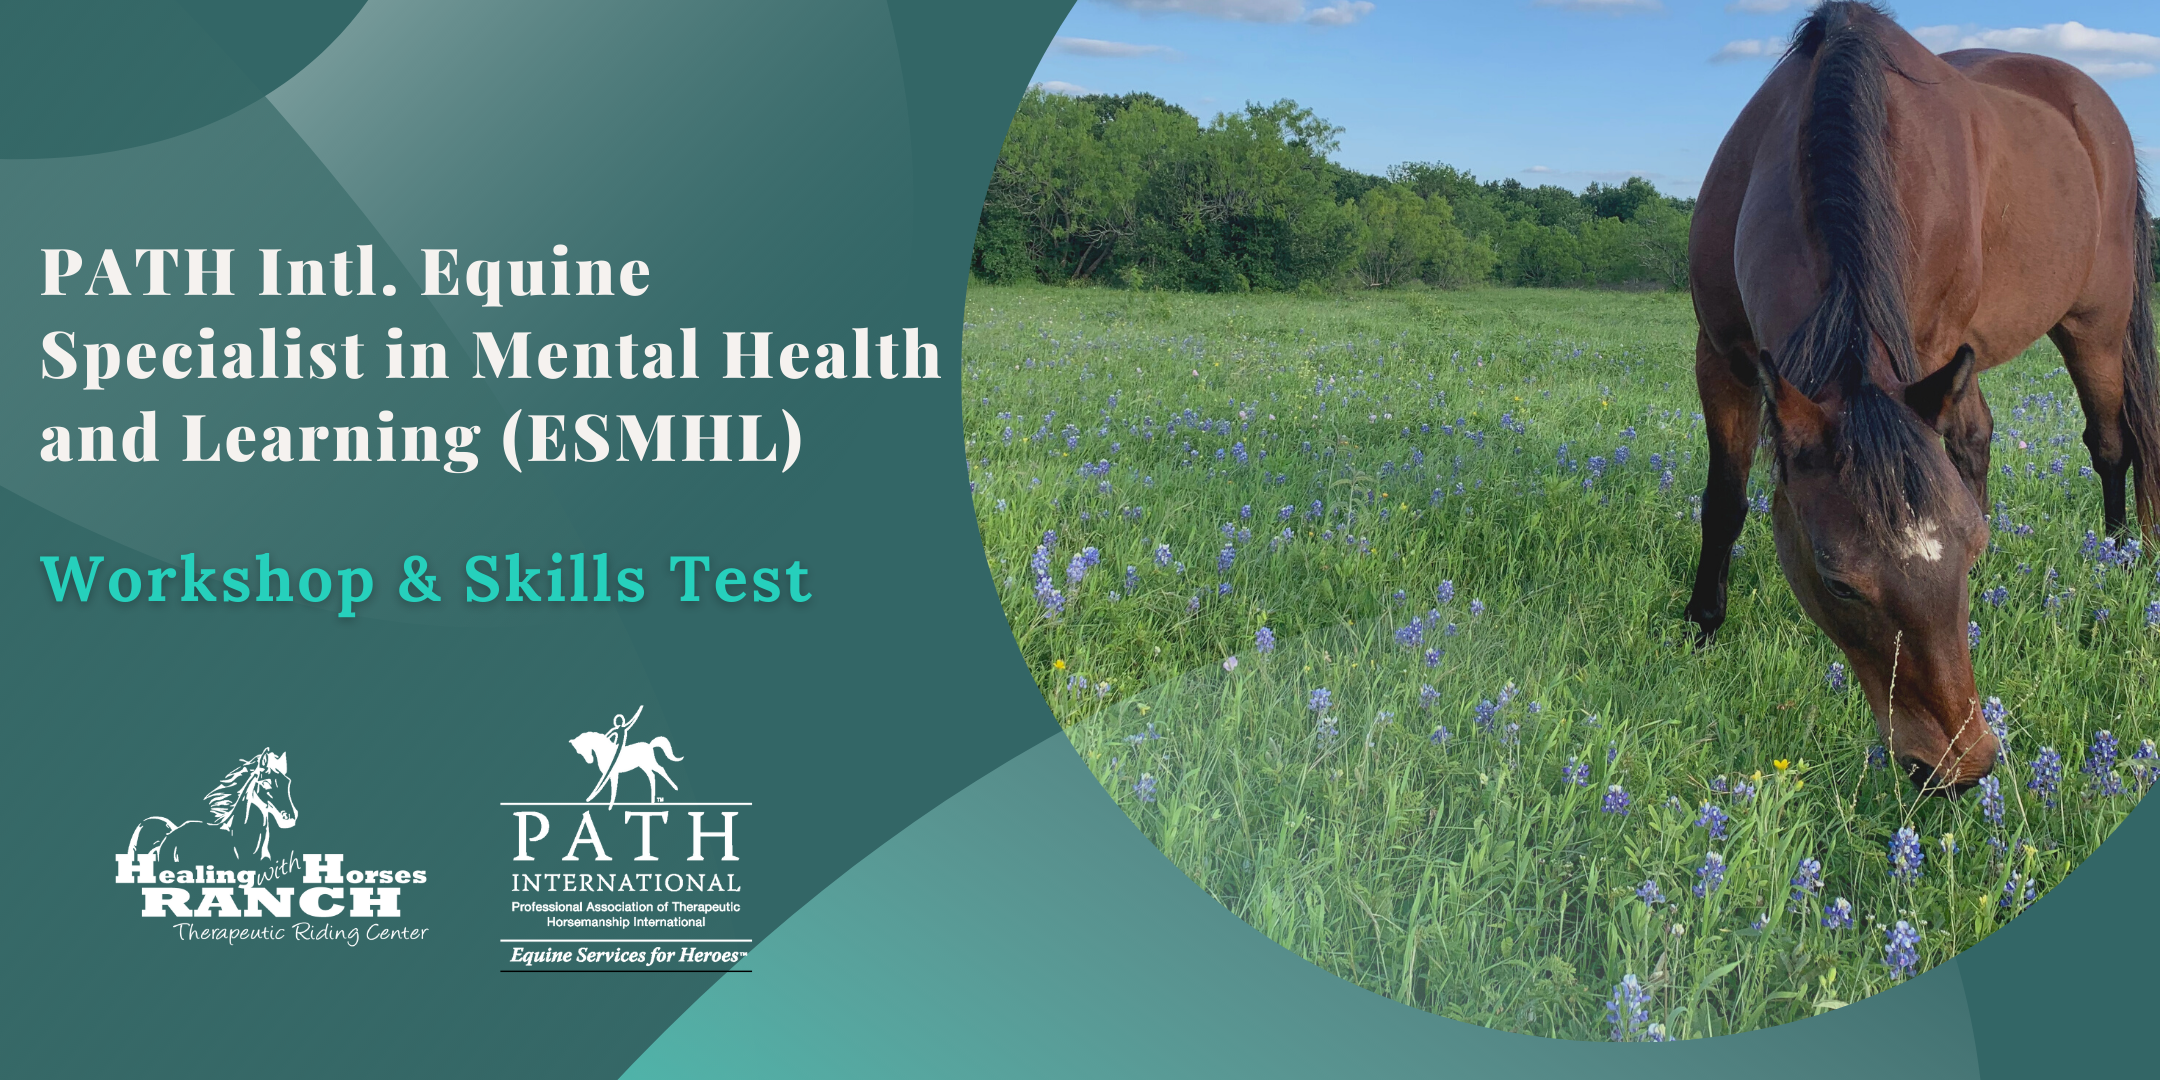 PATH Intl Equine Specialist in Mental Health and Learning Workshop & Test